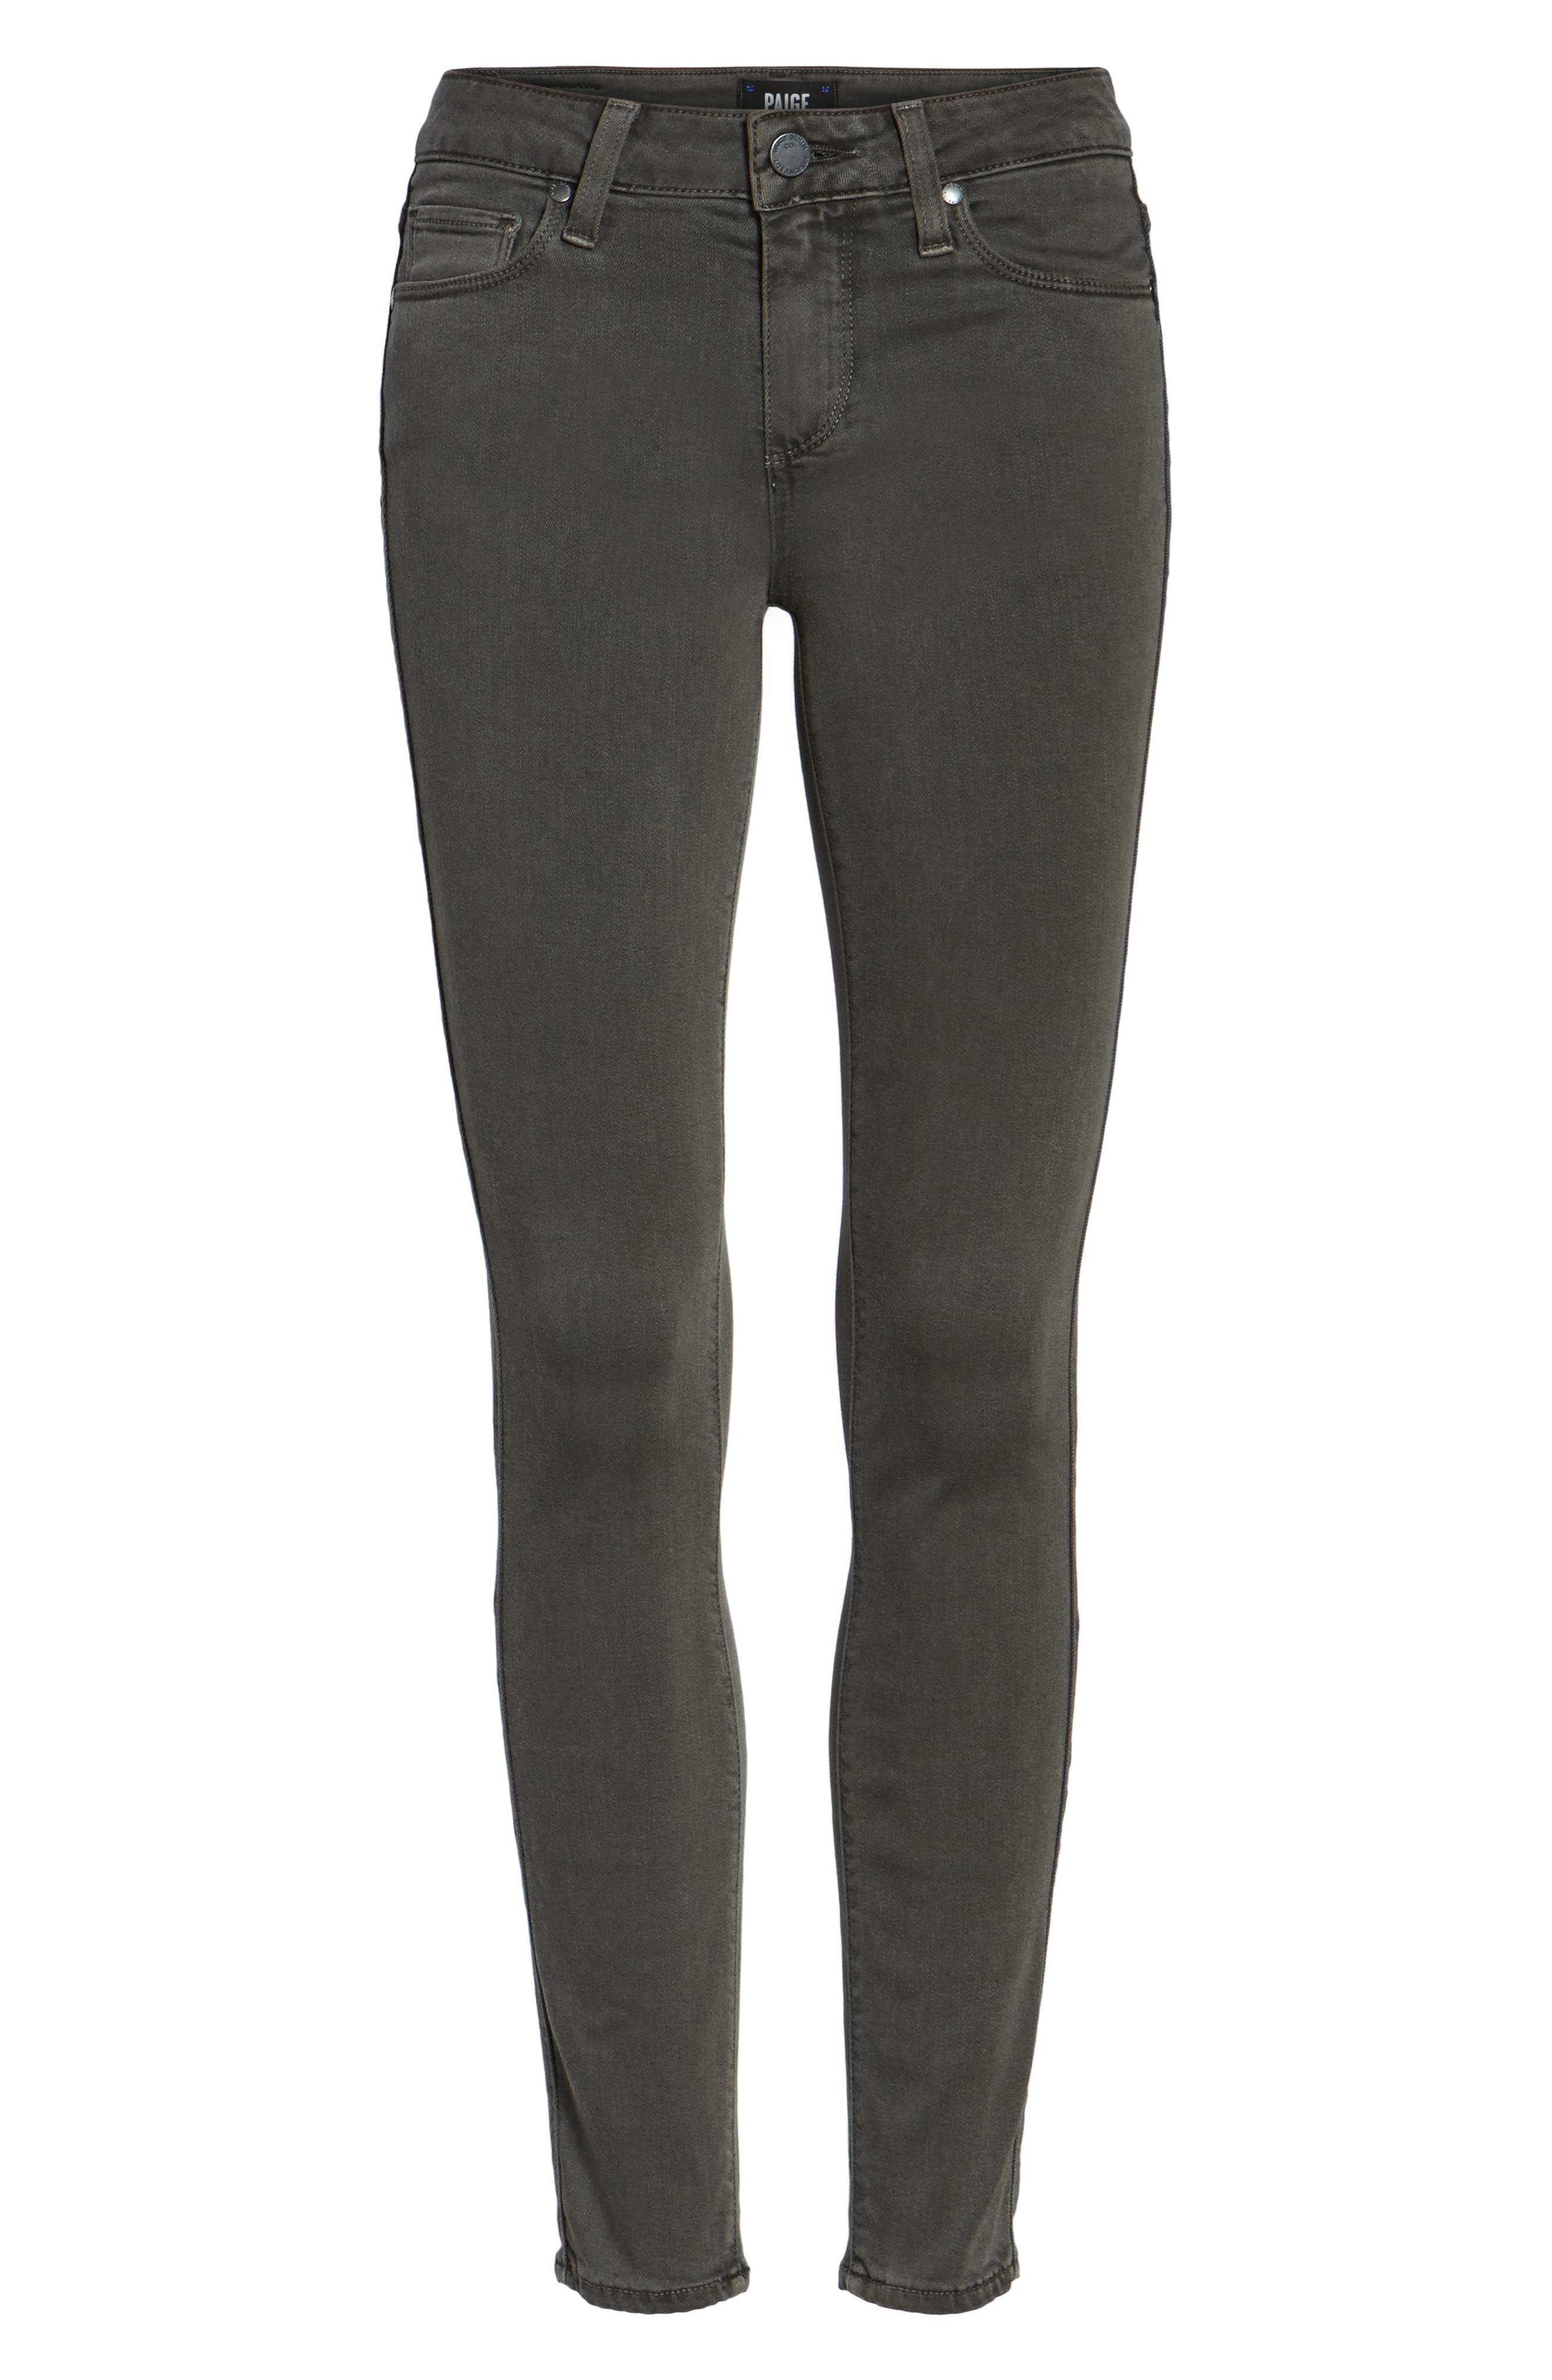 PAIGE, Transcend - Verdugo Ankle Skinny Jeans, Alternate thumbnail 6, color, 021